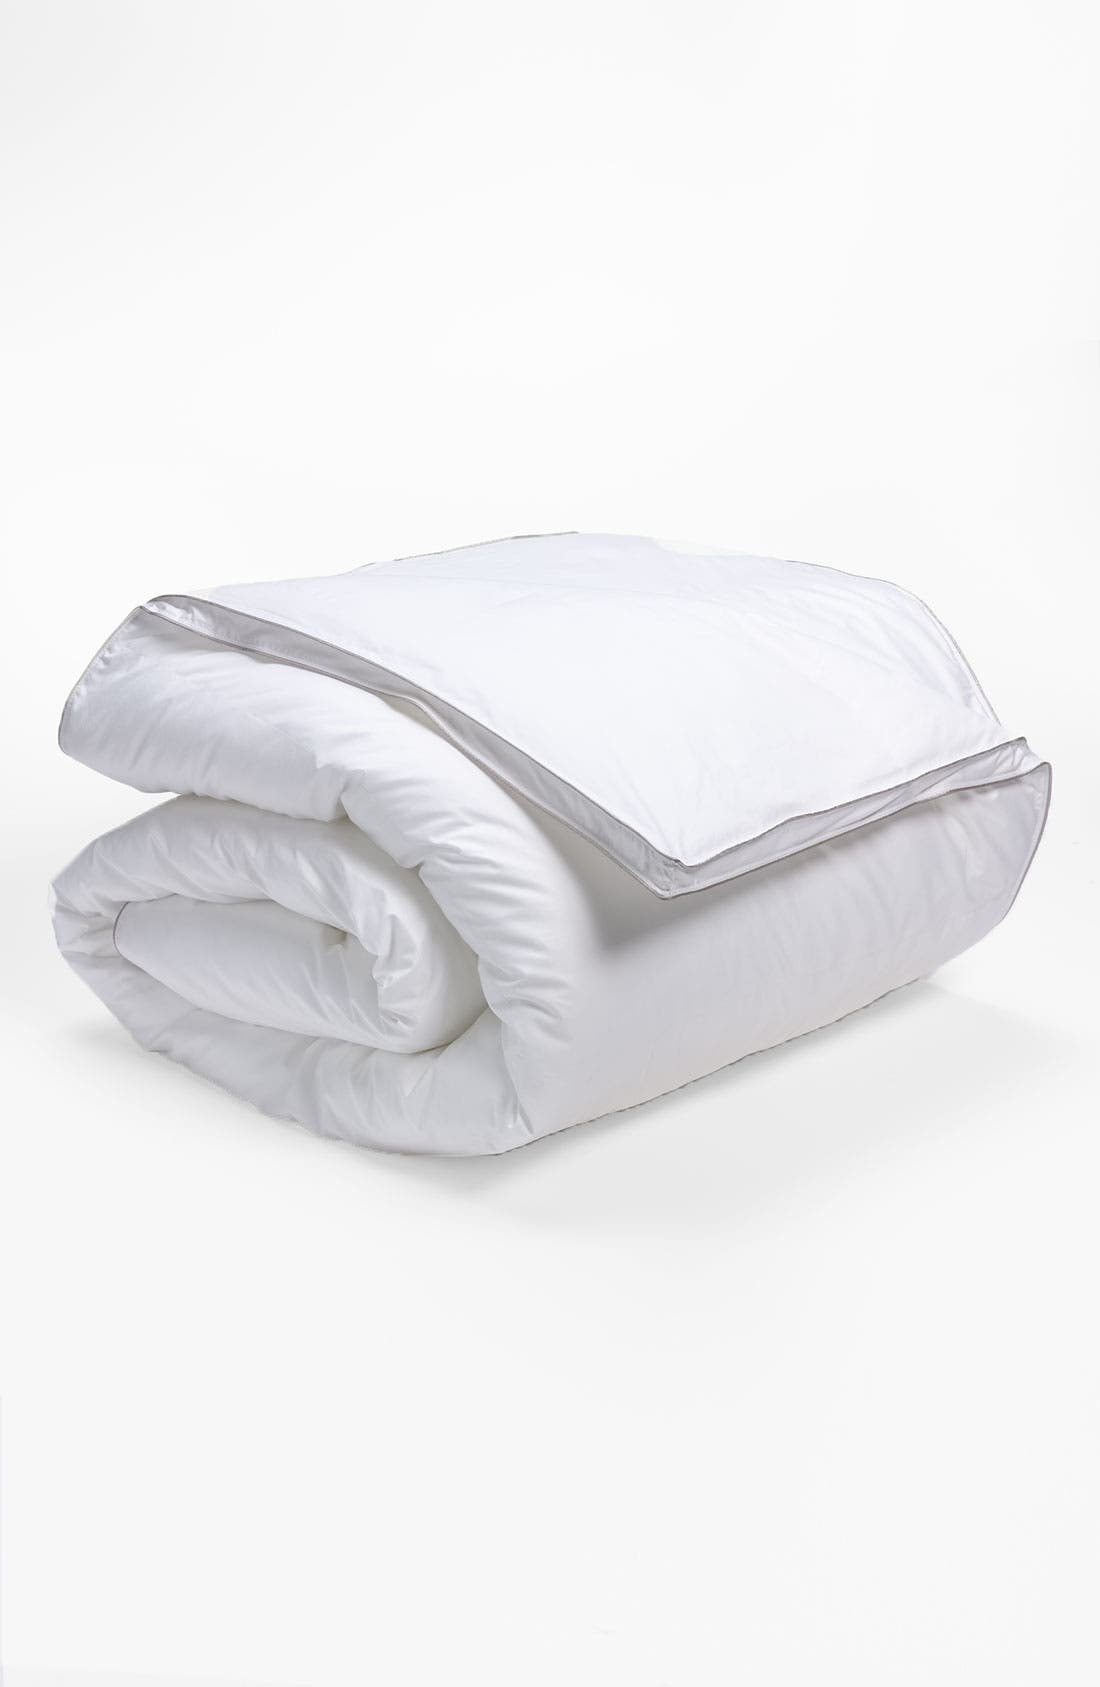 Nordstrom at Home Down Alternative Comforter